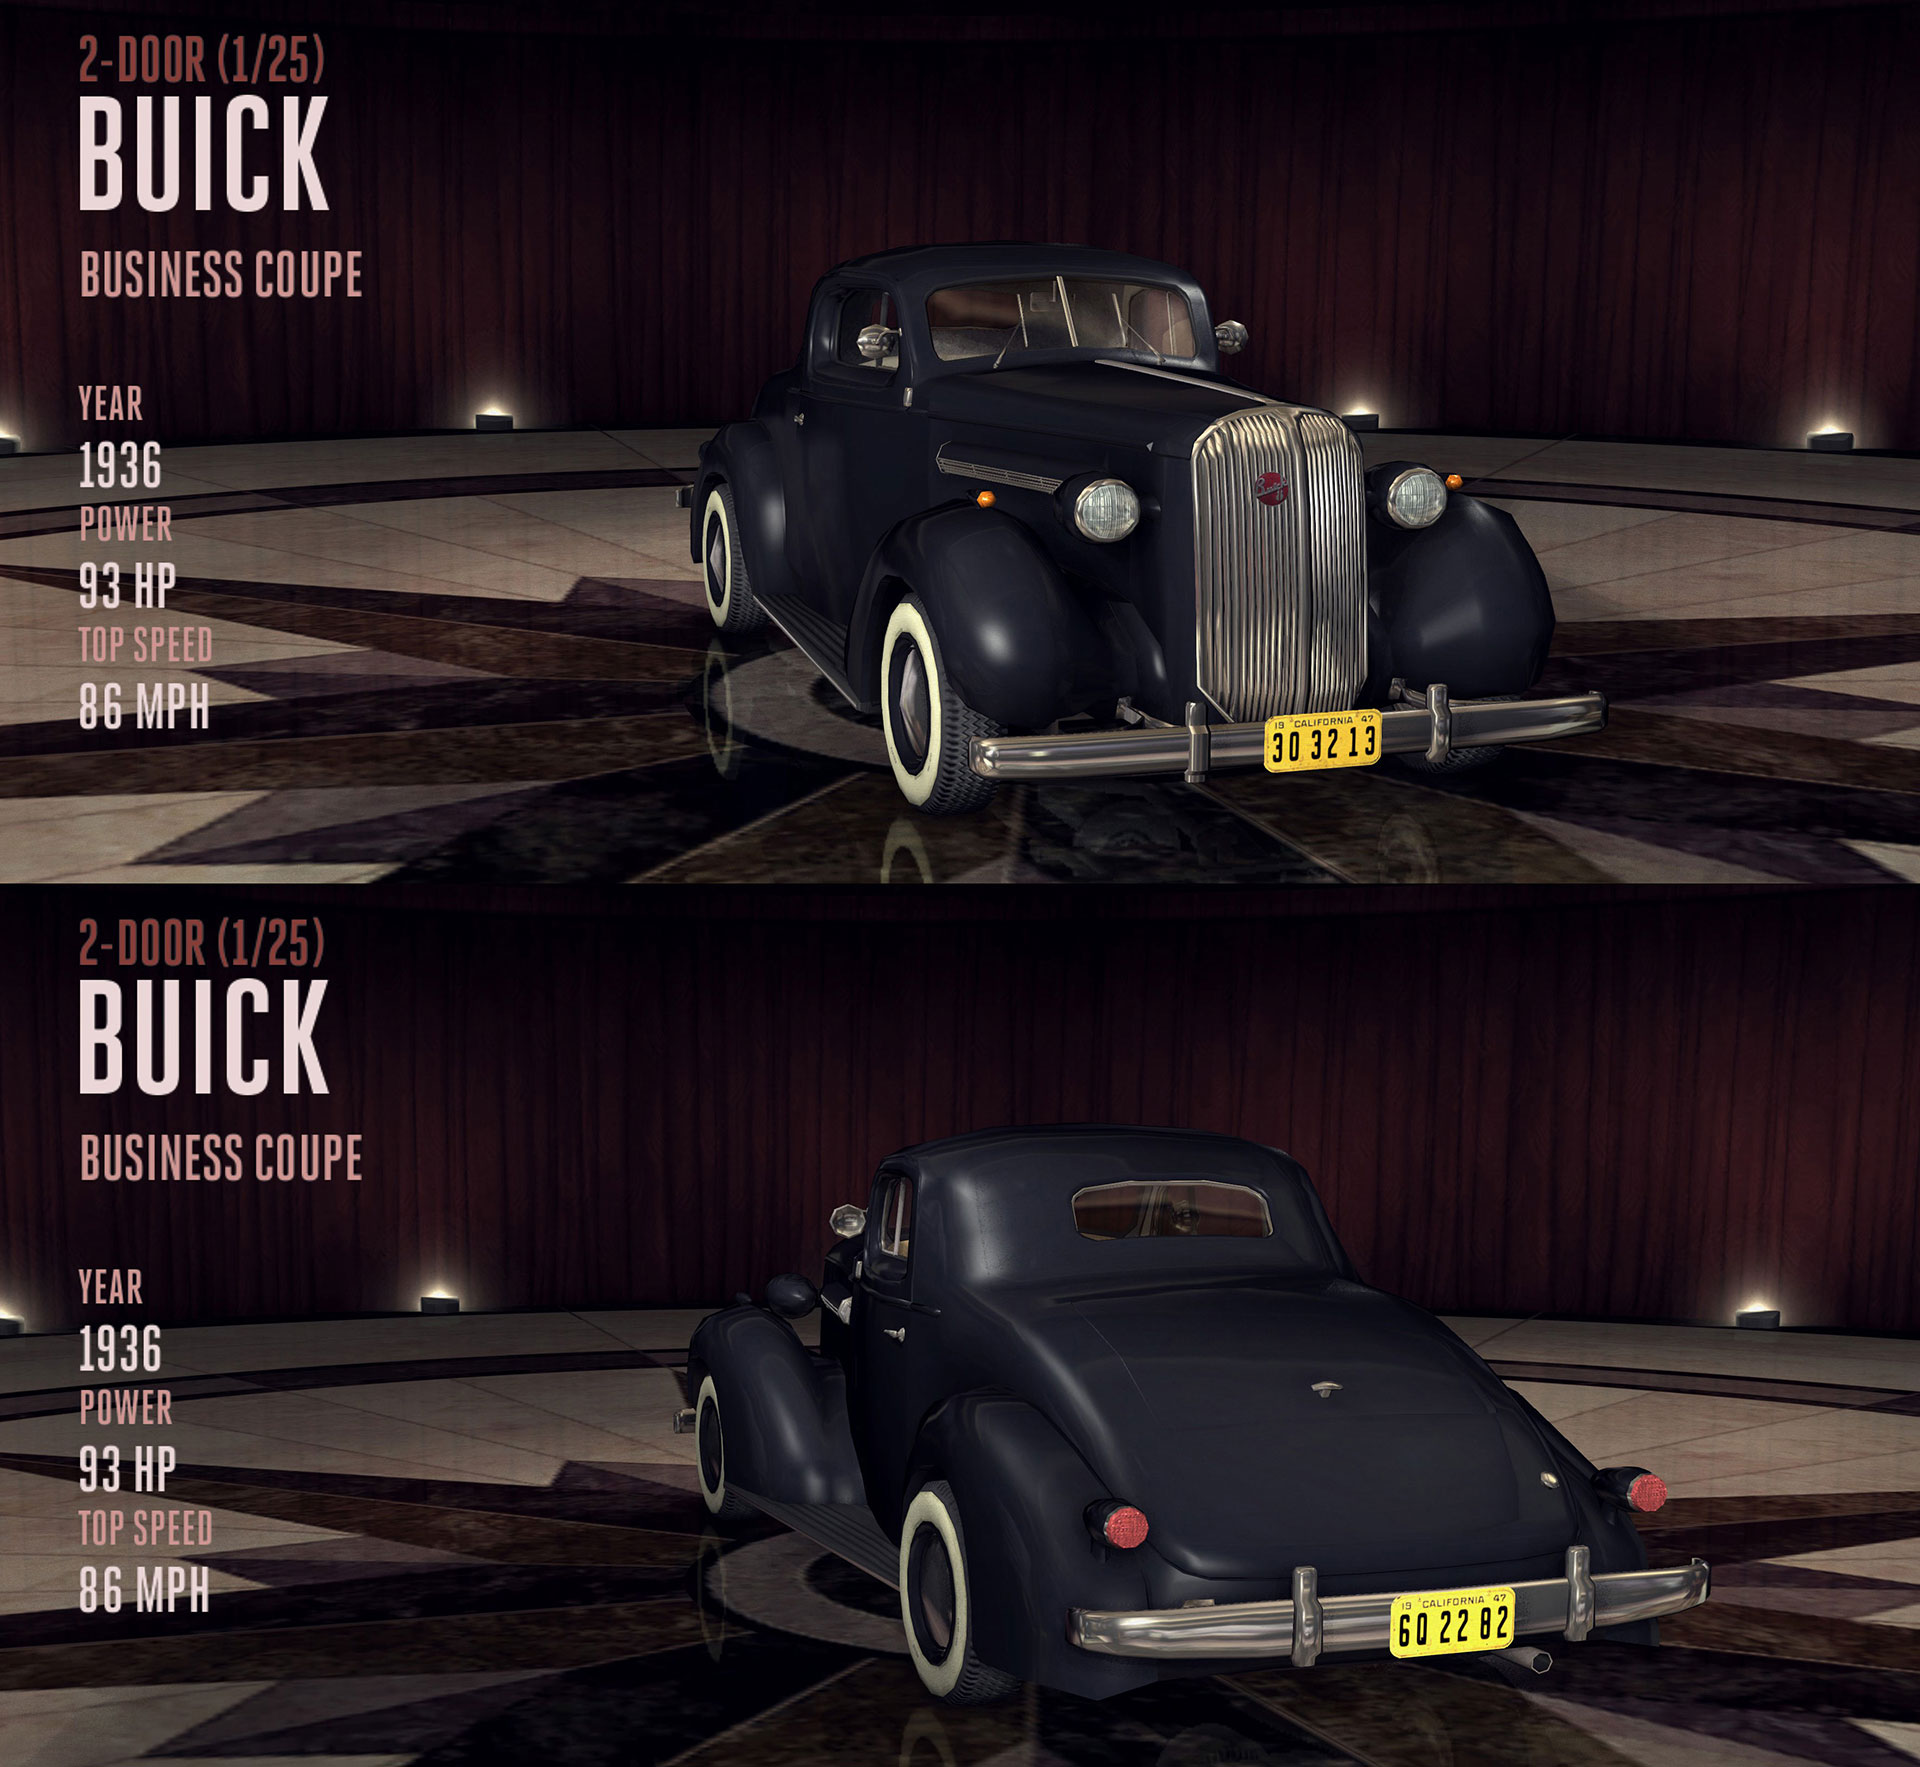 Archivo:1936-buick-business-coupe.jpg